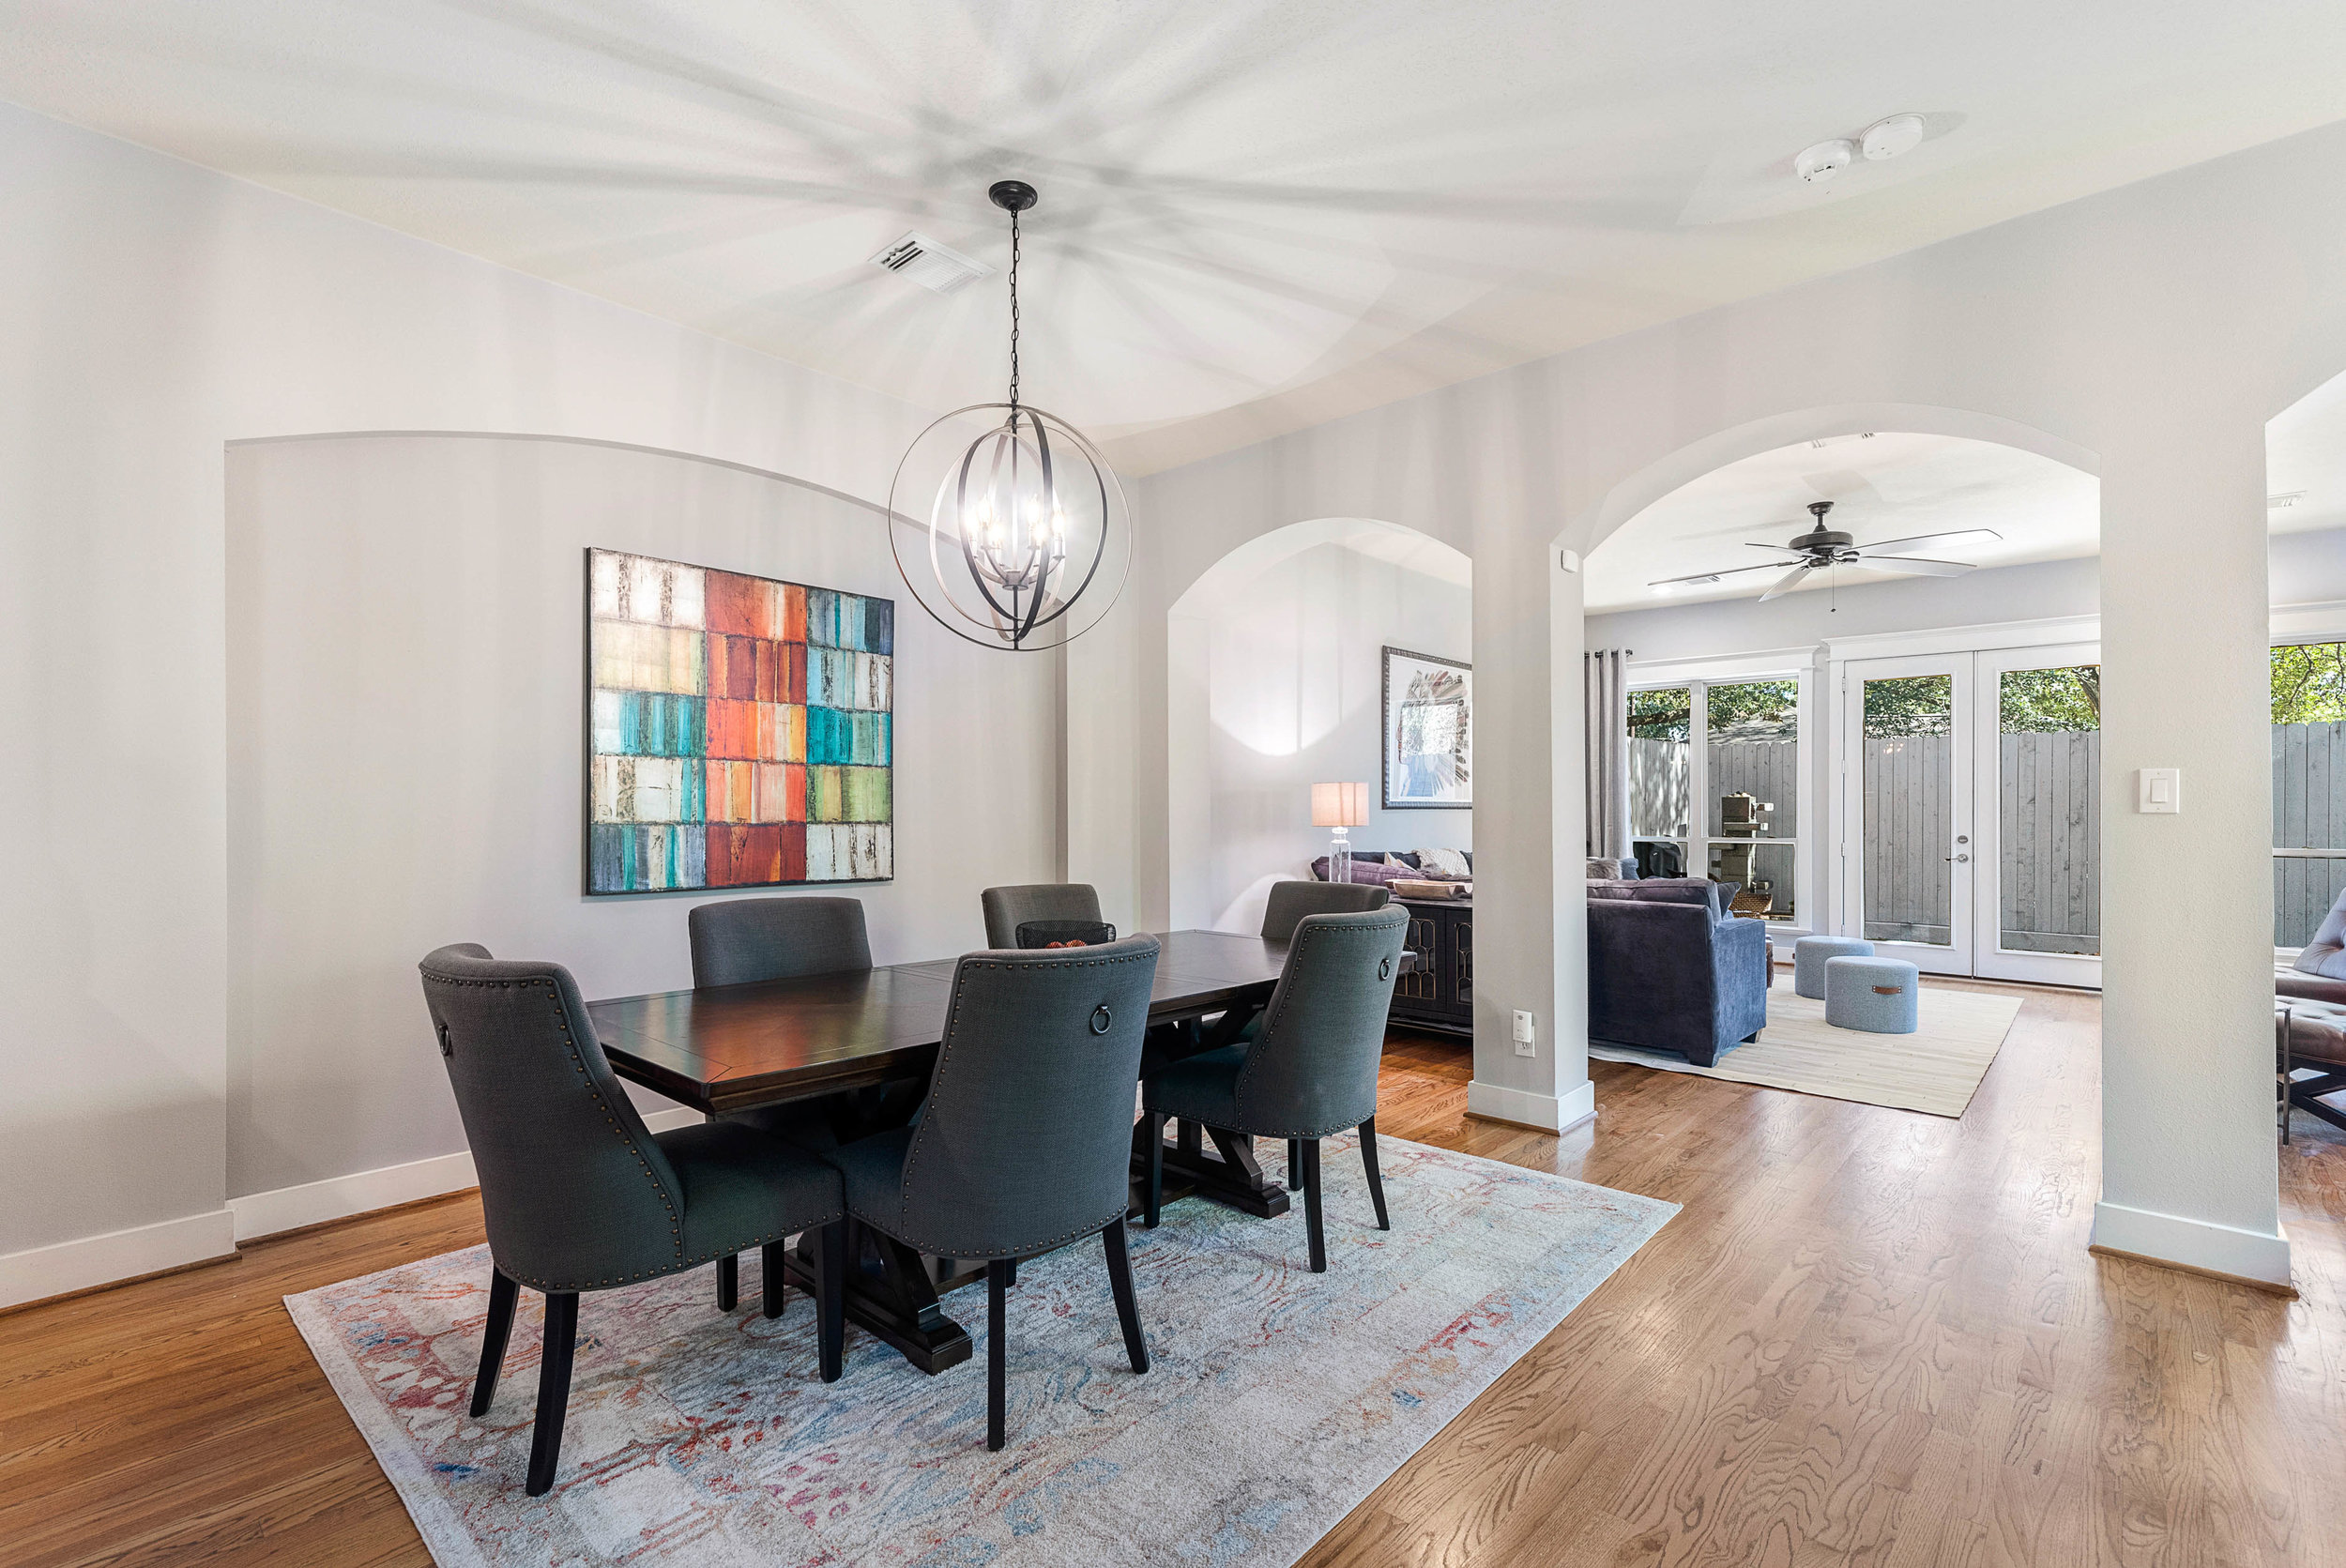 LUXURY TOWNHOME DINING ROOM HOUTON HEIGHTS TEXAS 77008.jpg